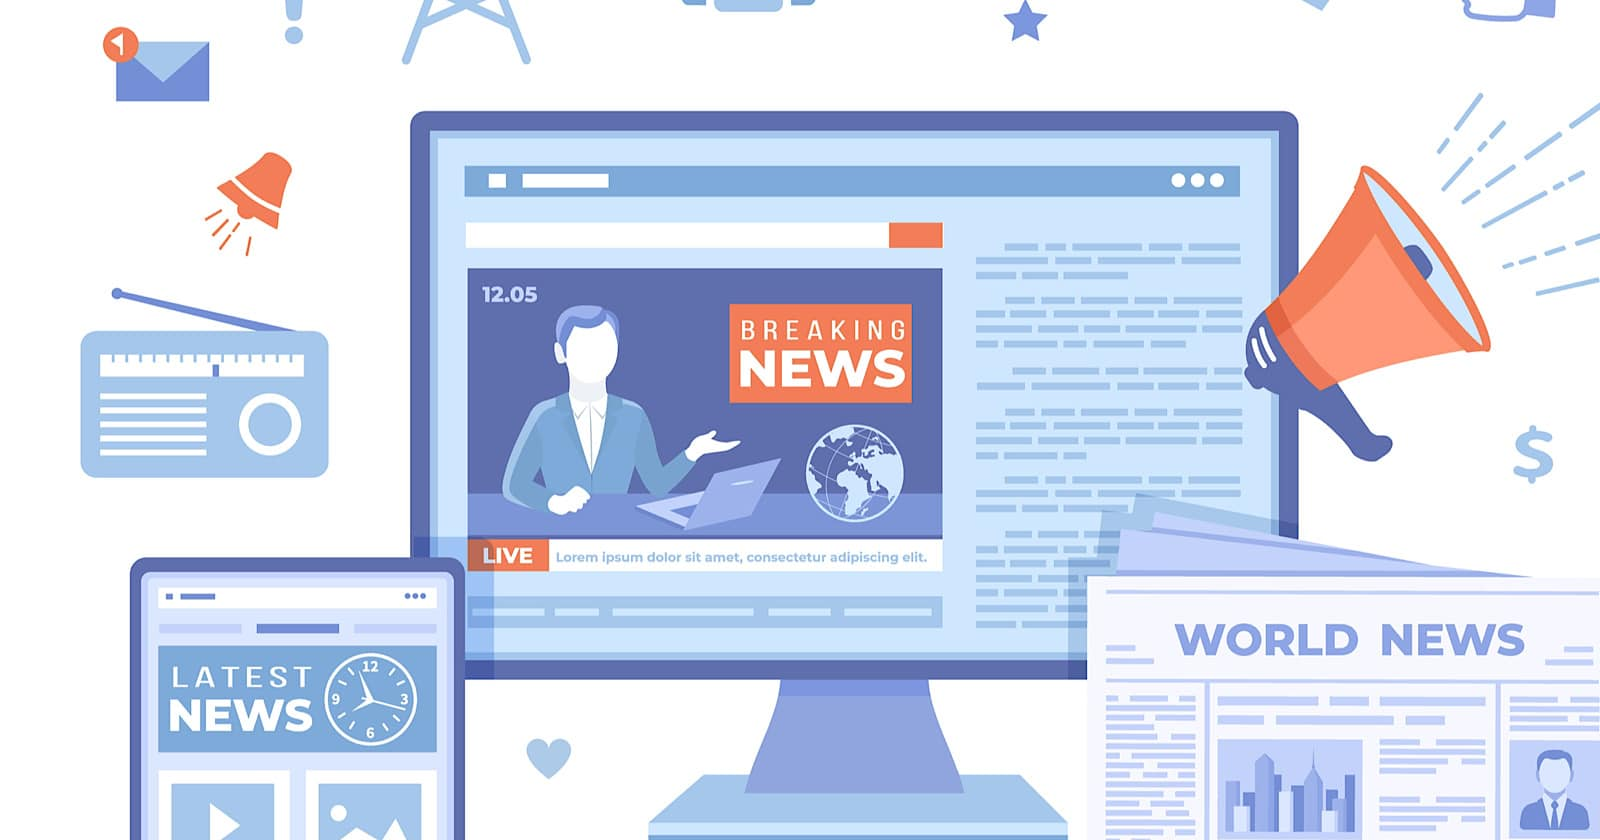 Google on SEO Best Practices for News Sites & Short Articles via @MattGSouthern